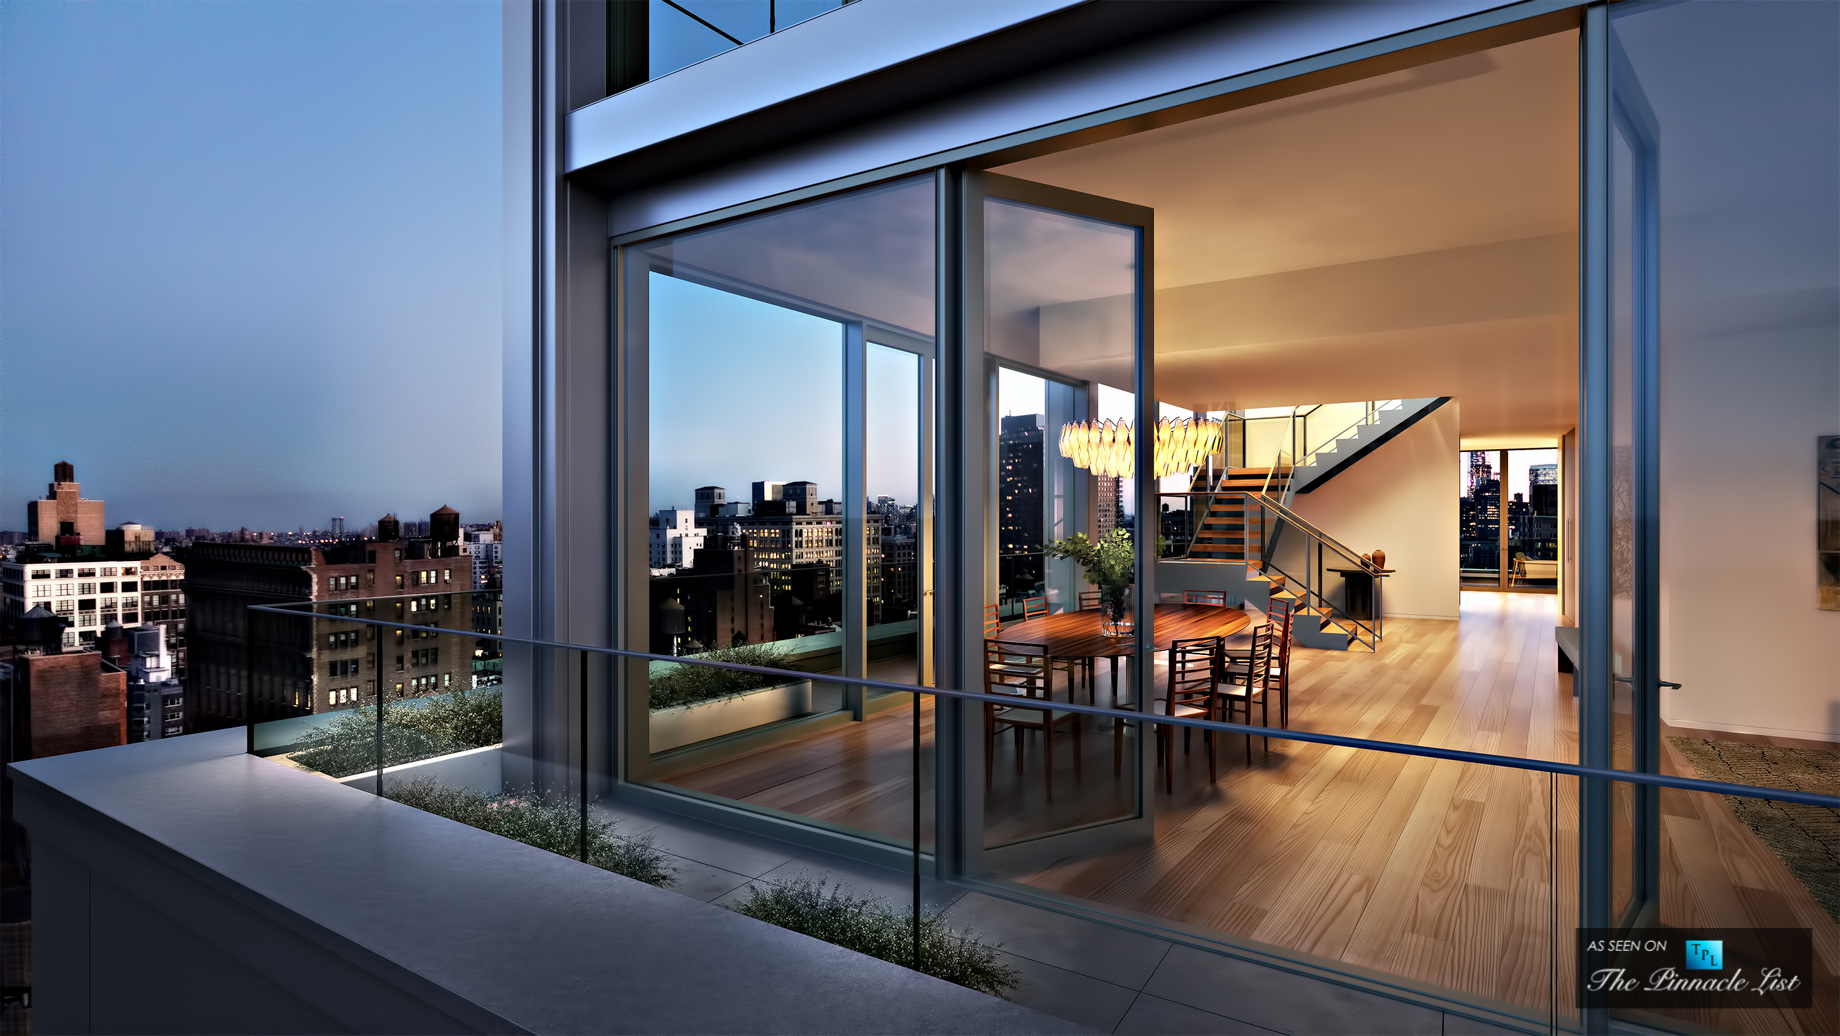 212 E 12 - Top 5 Luxury Real Estate Projects to Watch in New York City